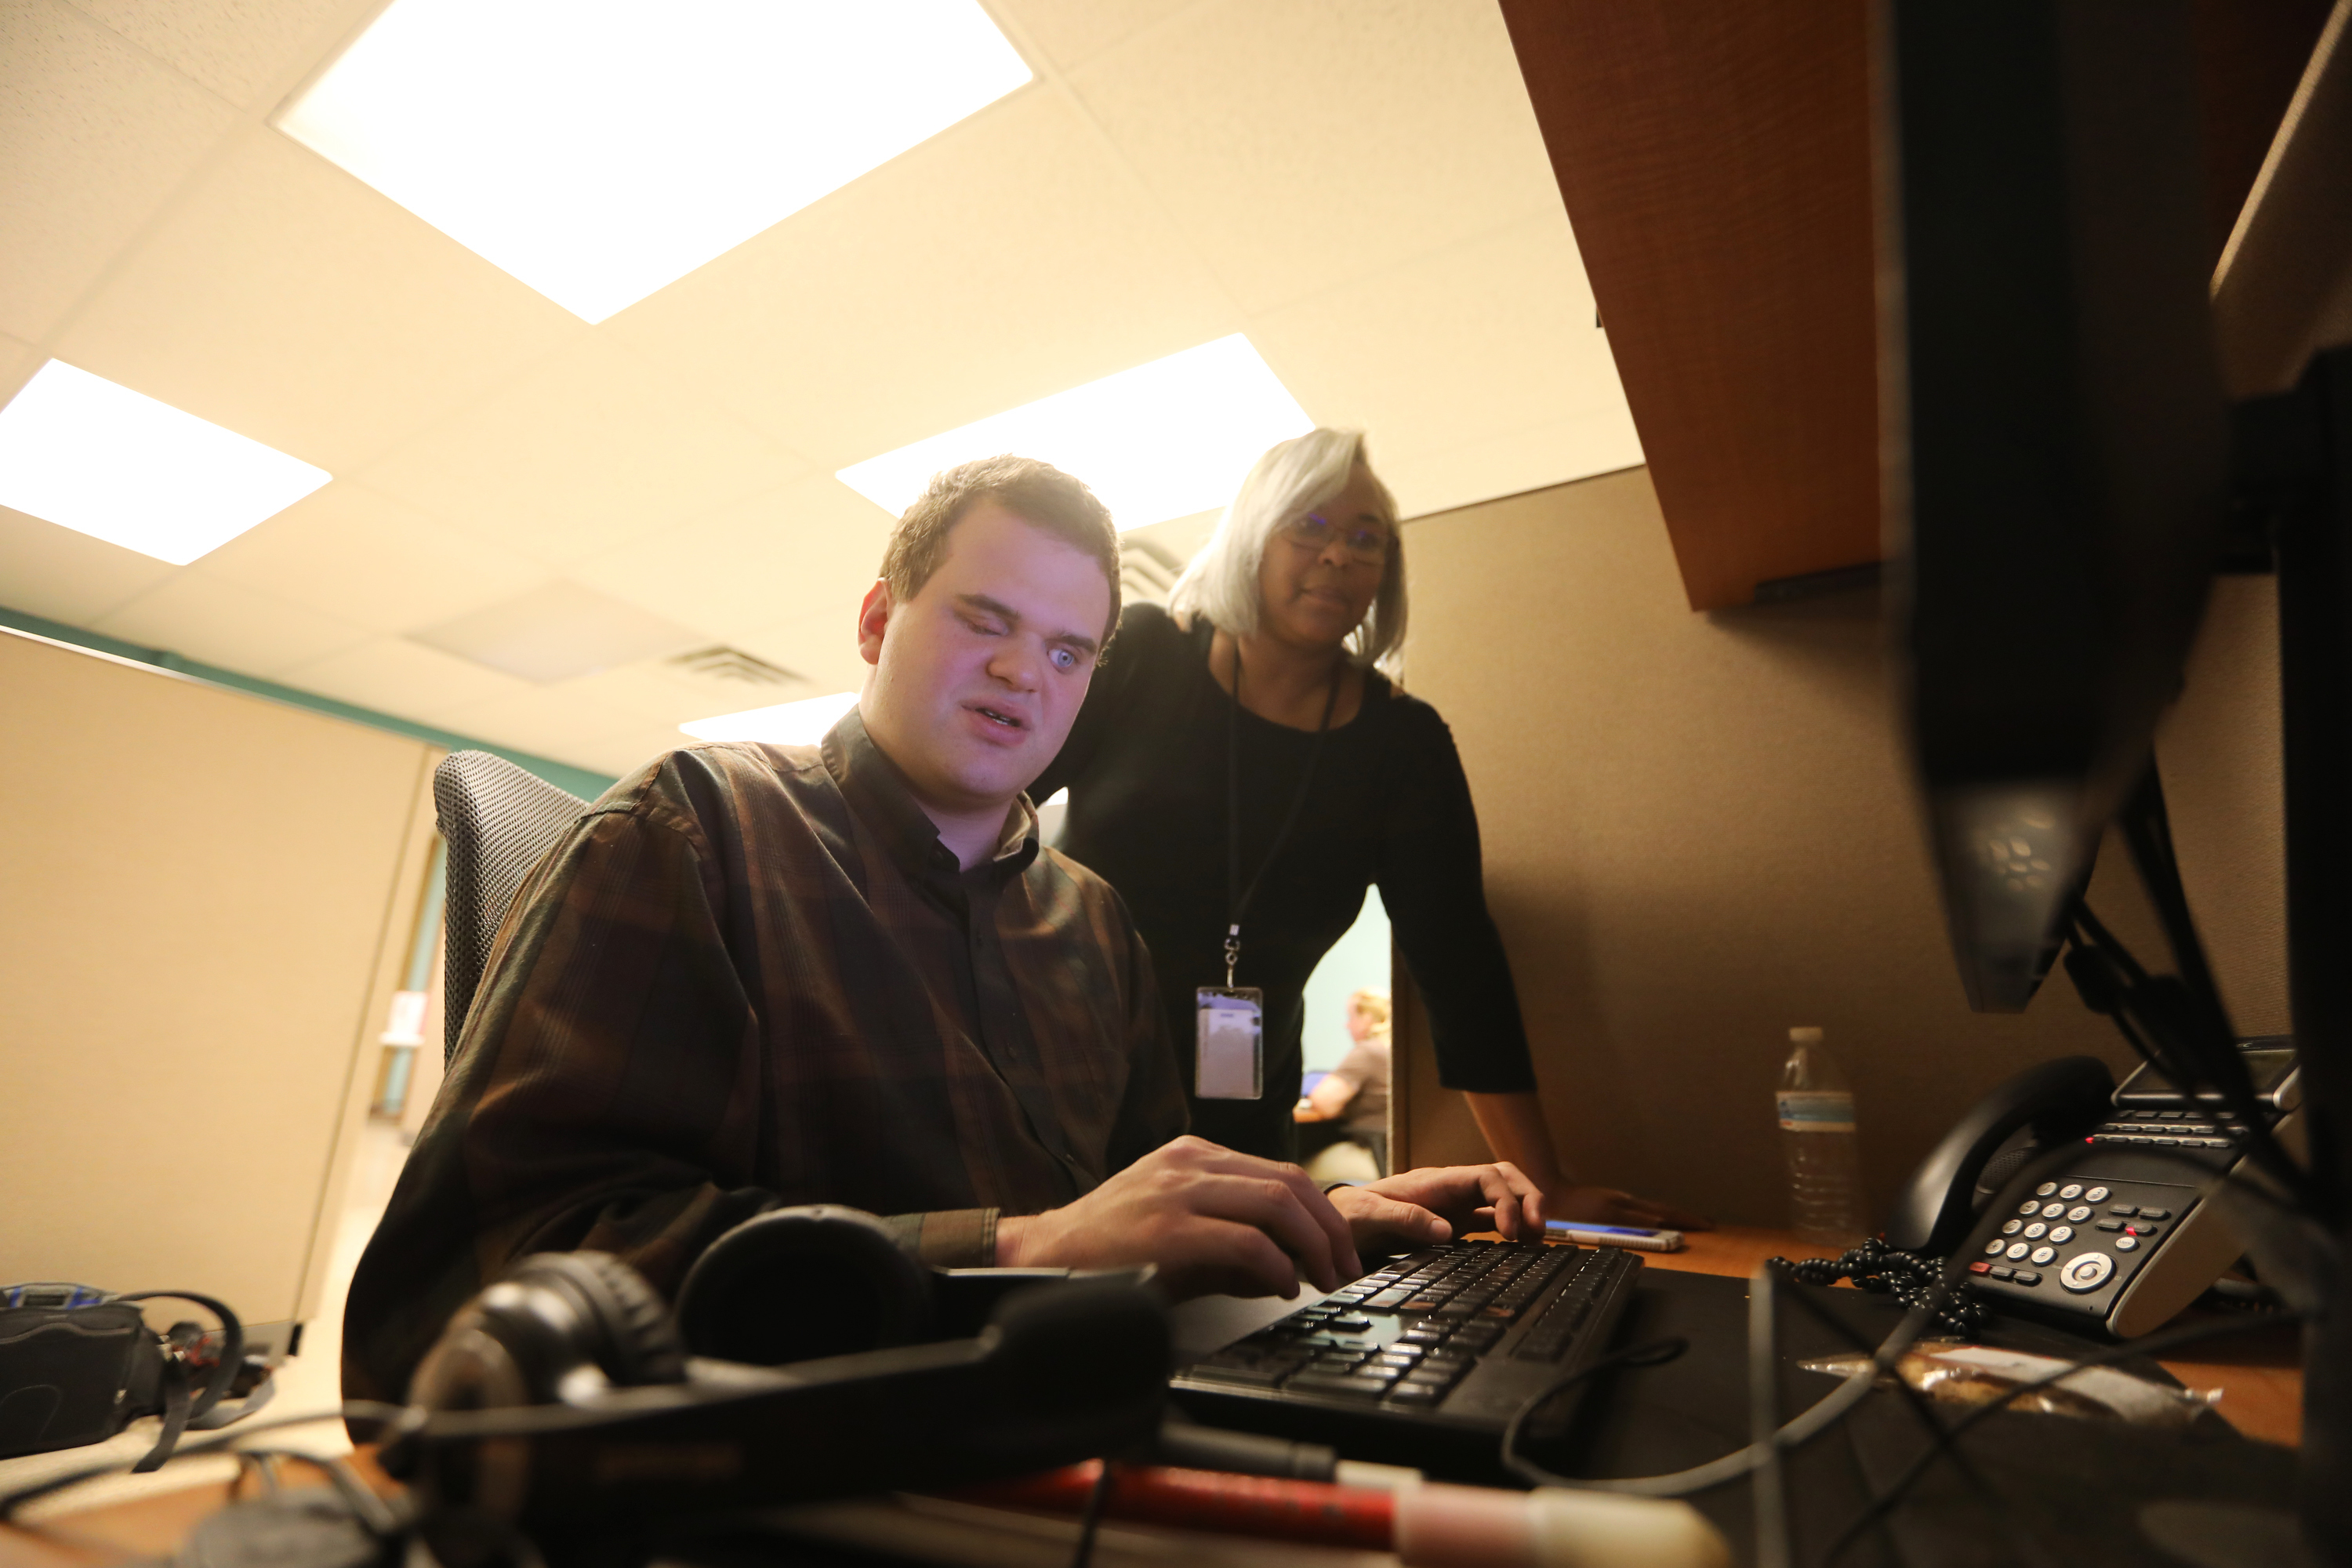 Matt Wallace at work on the computer at VisionCorps. Director of Services Carolyn Madison says her blind employees are the most reliable she´s had in decades of handling government contracts.